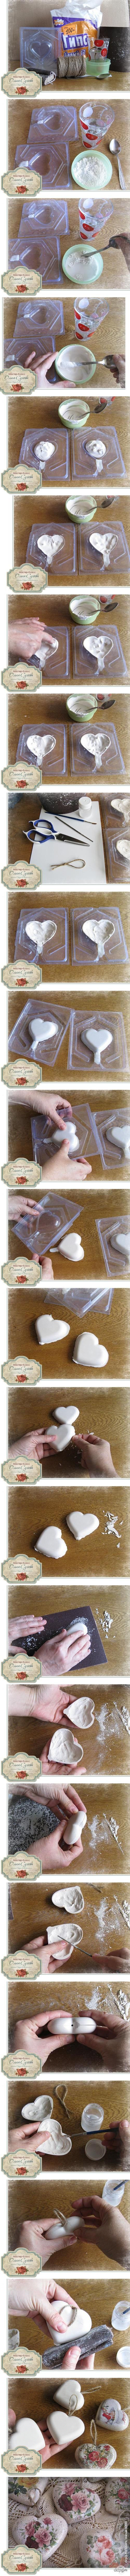 art craft - diy tutorial - easy and very nice!!! I can do it!!! ;)